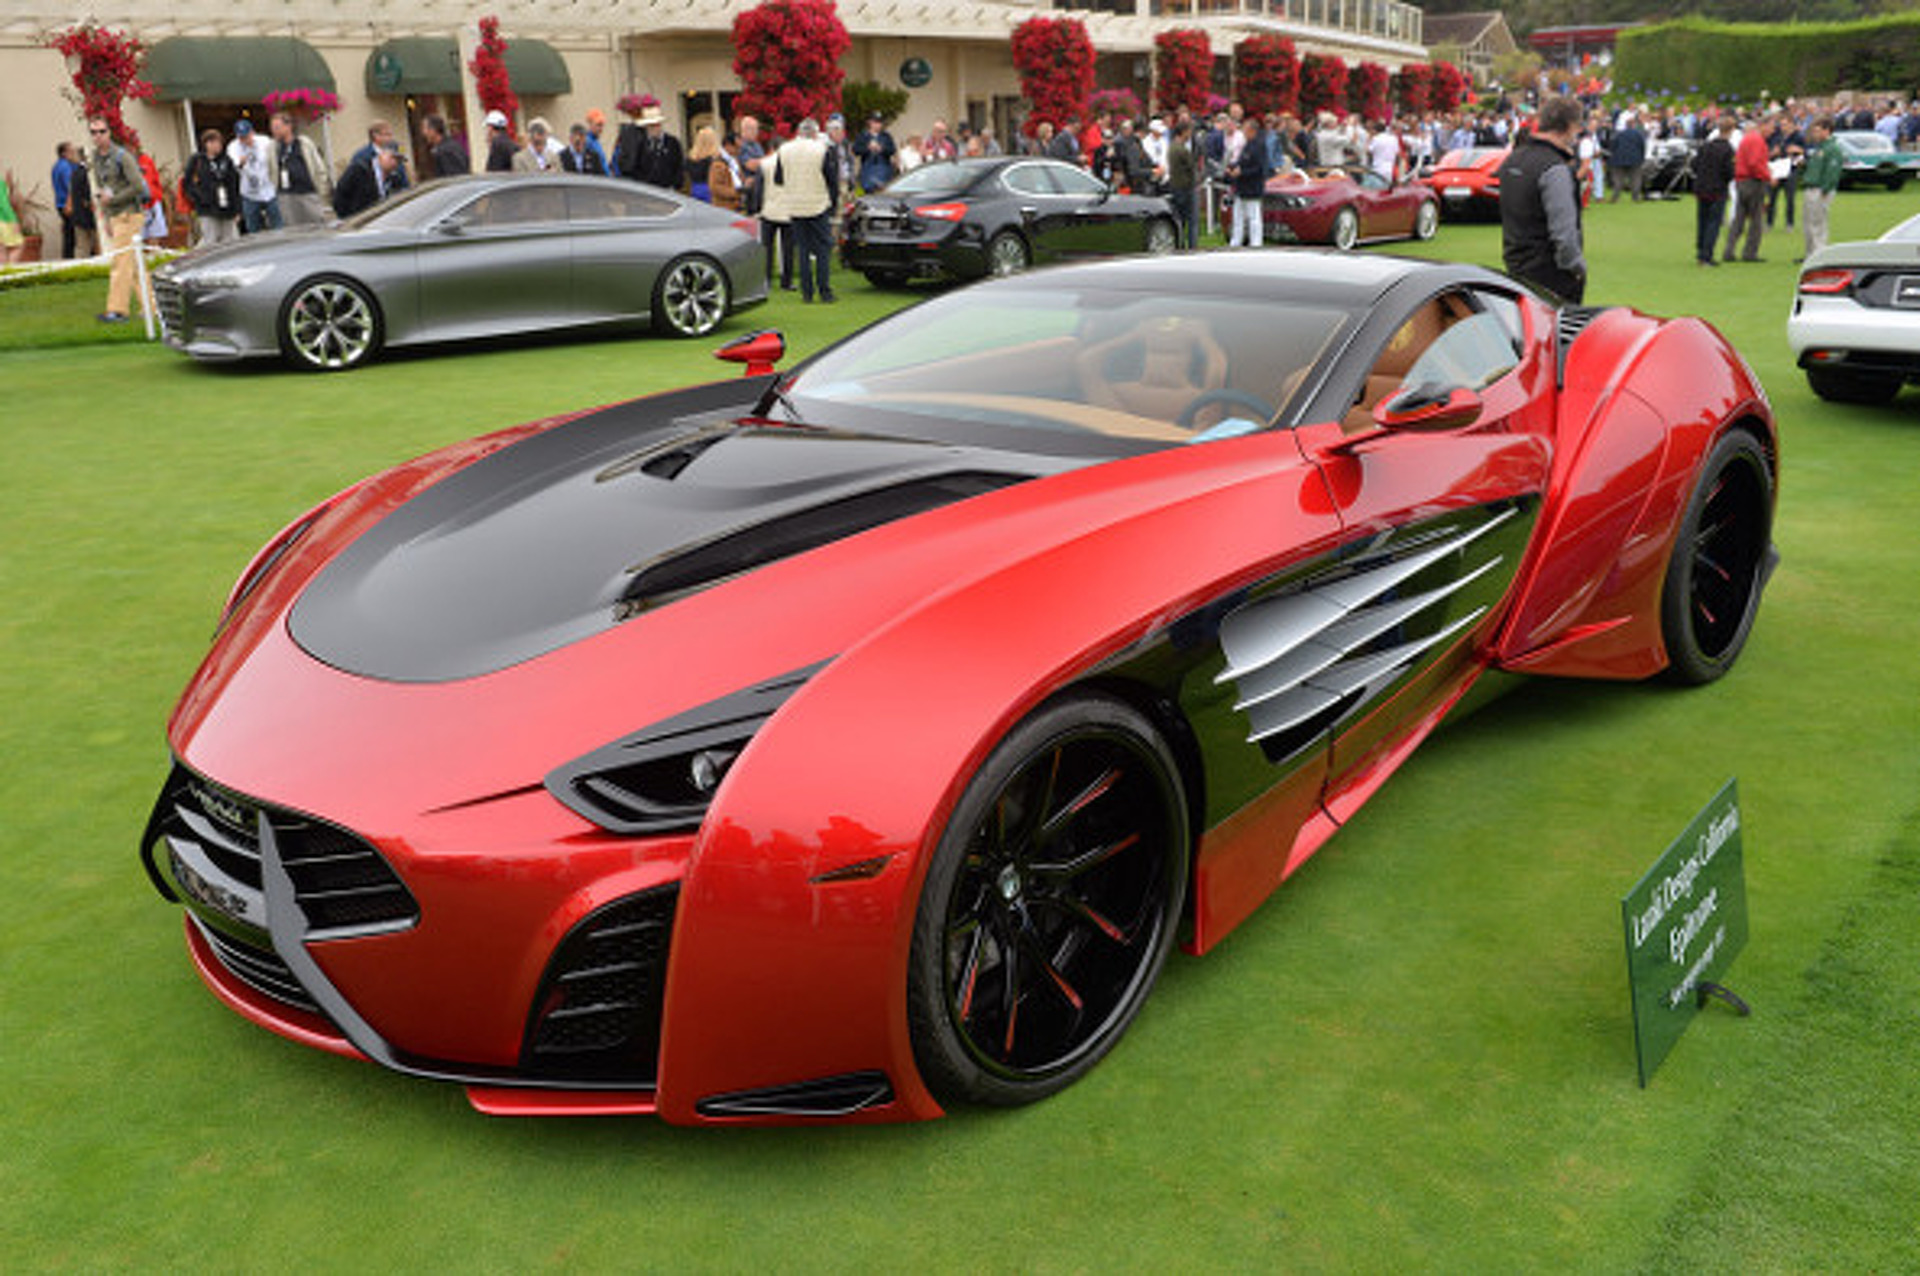 Supercars that Graced the Lawn of Pebble Beach